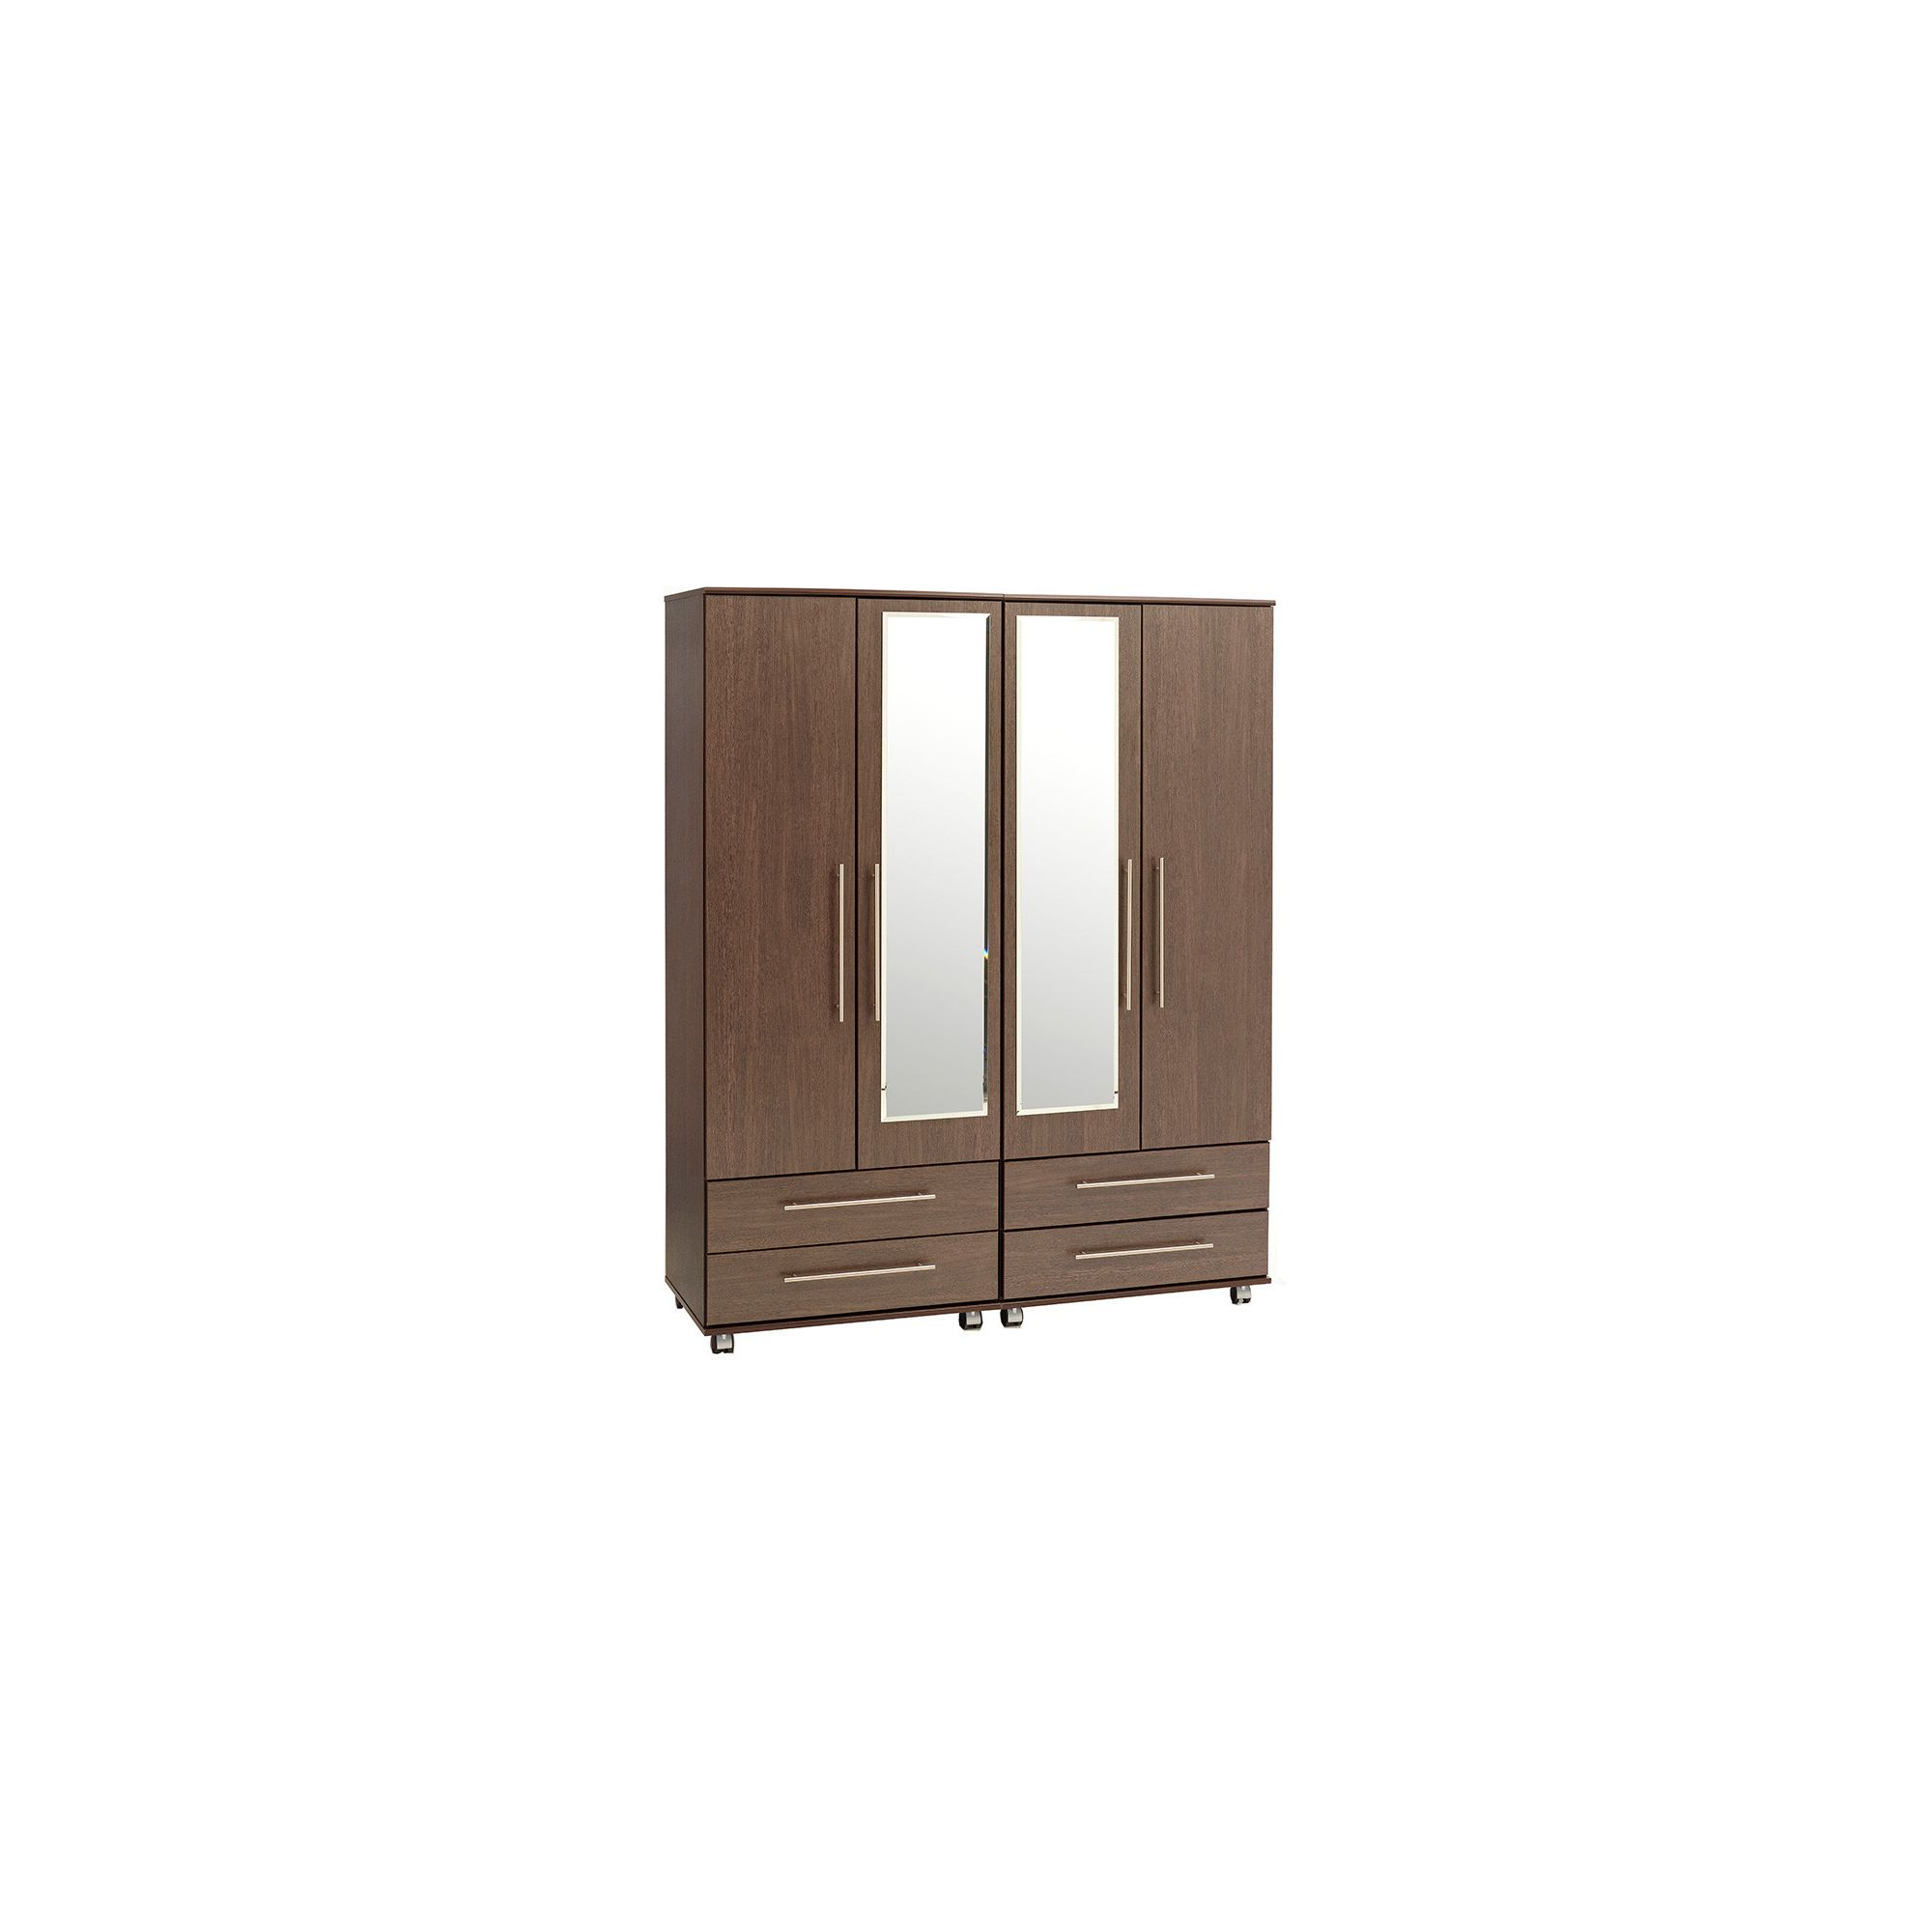 Ideal Furniture New York 4 Door Wardrobe - Gloss Black at Tesco Direct